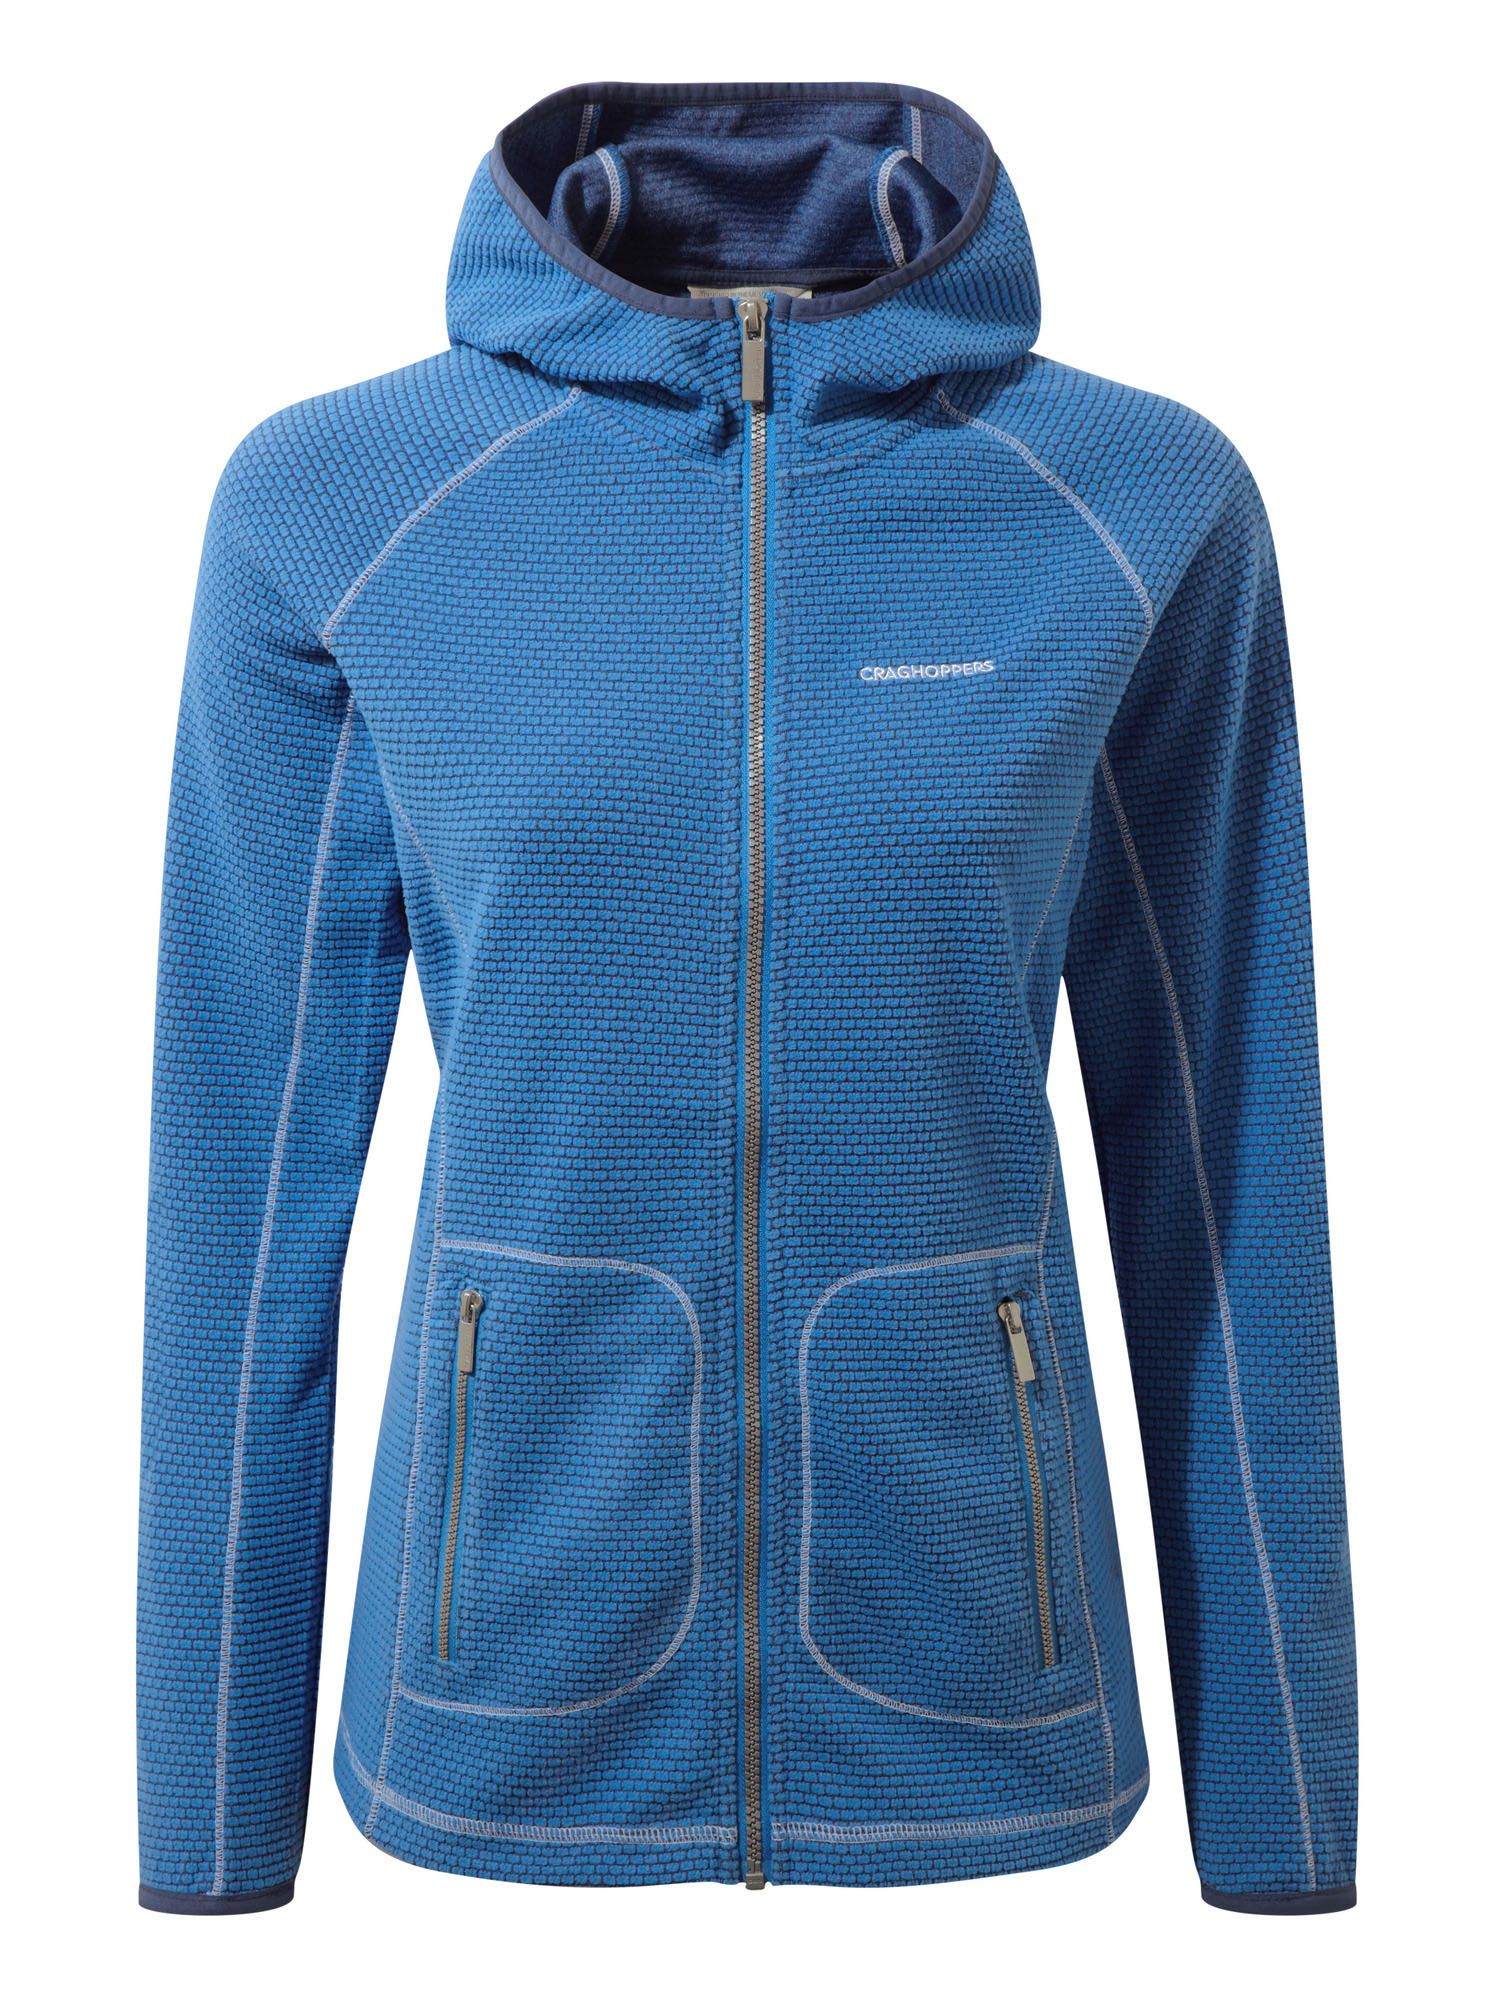 Craghoppers Hazelton Hooded Fleece Jacket, Blue